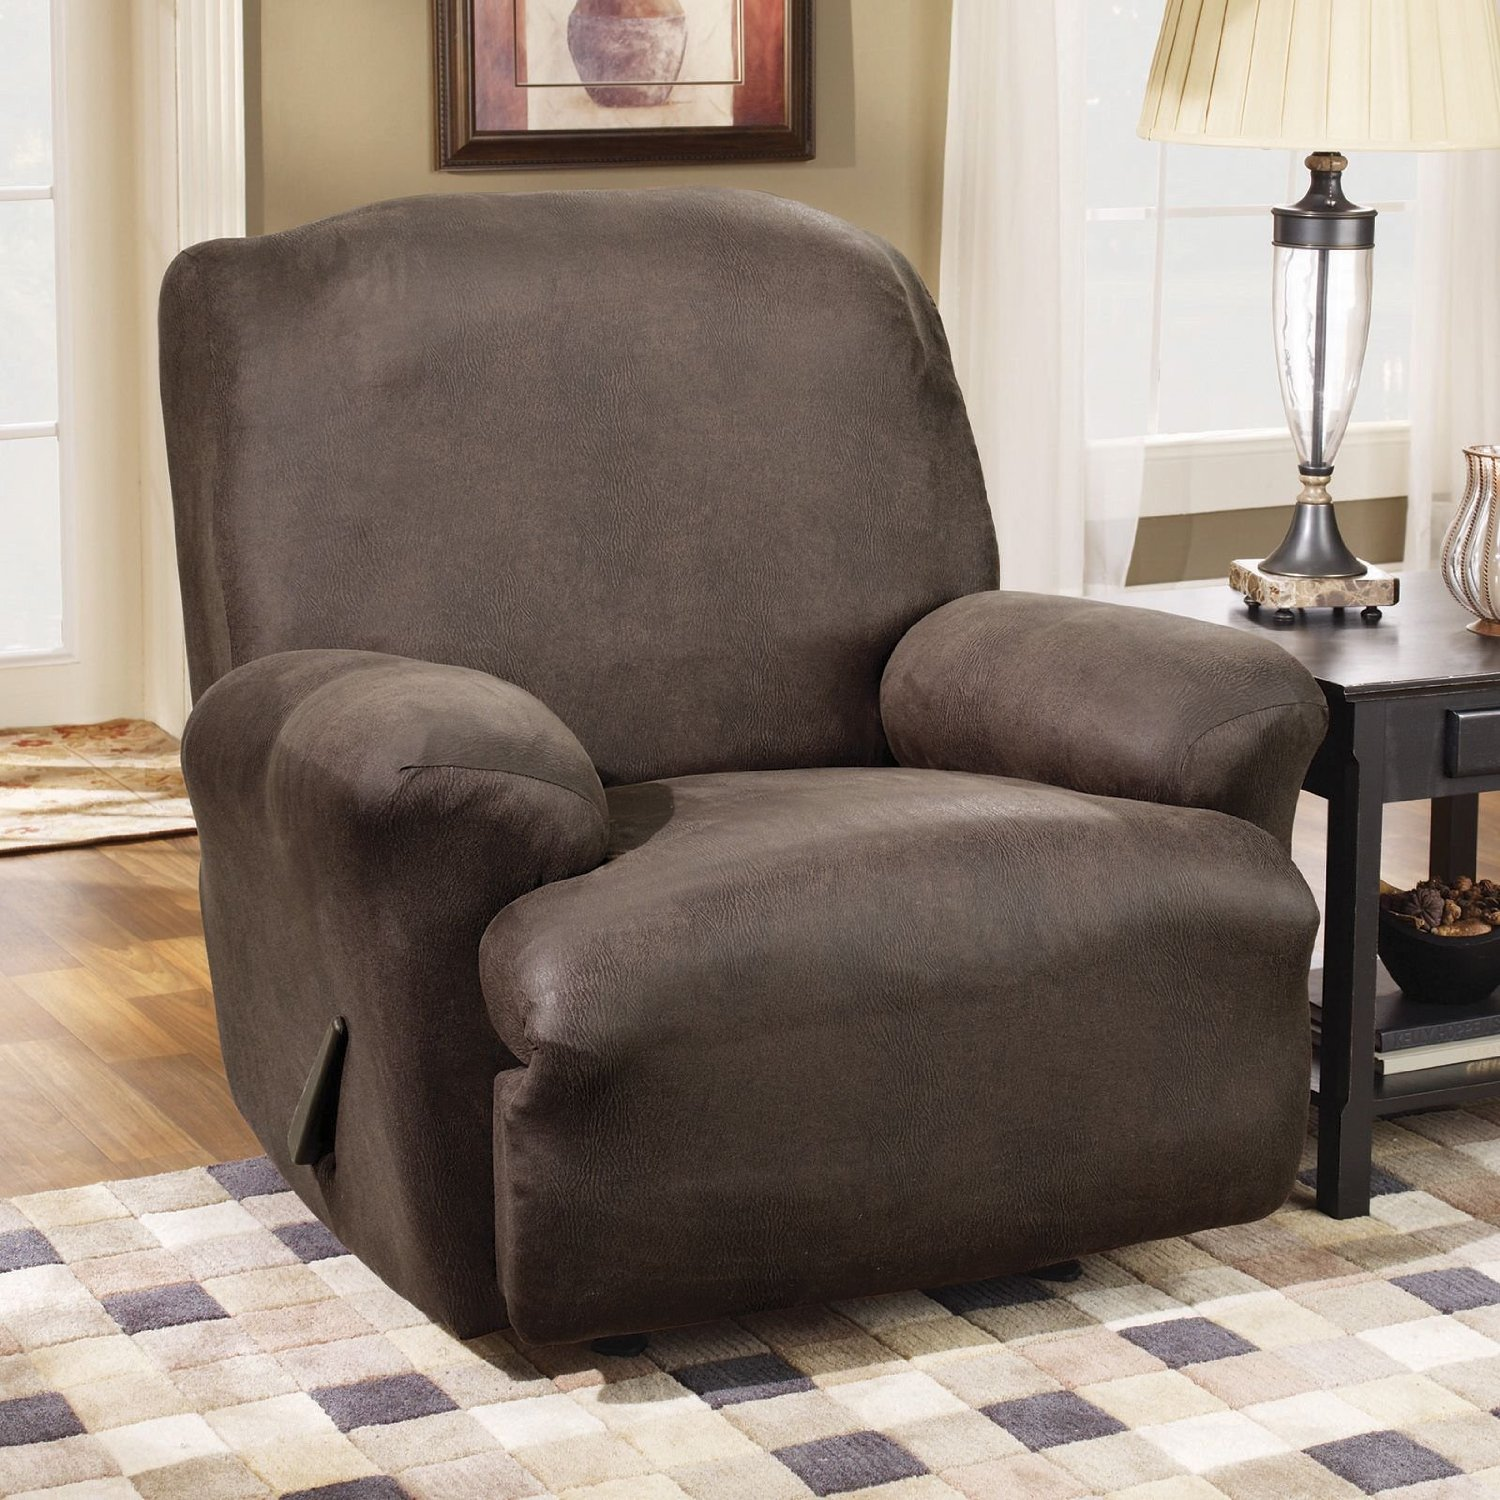 A Review On Sure Fit Stretch Leather Recliner Slipcover